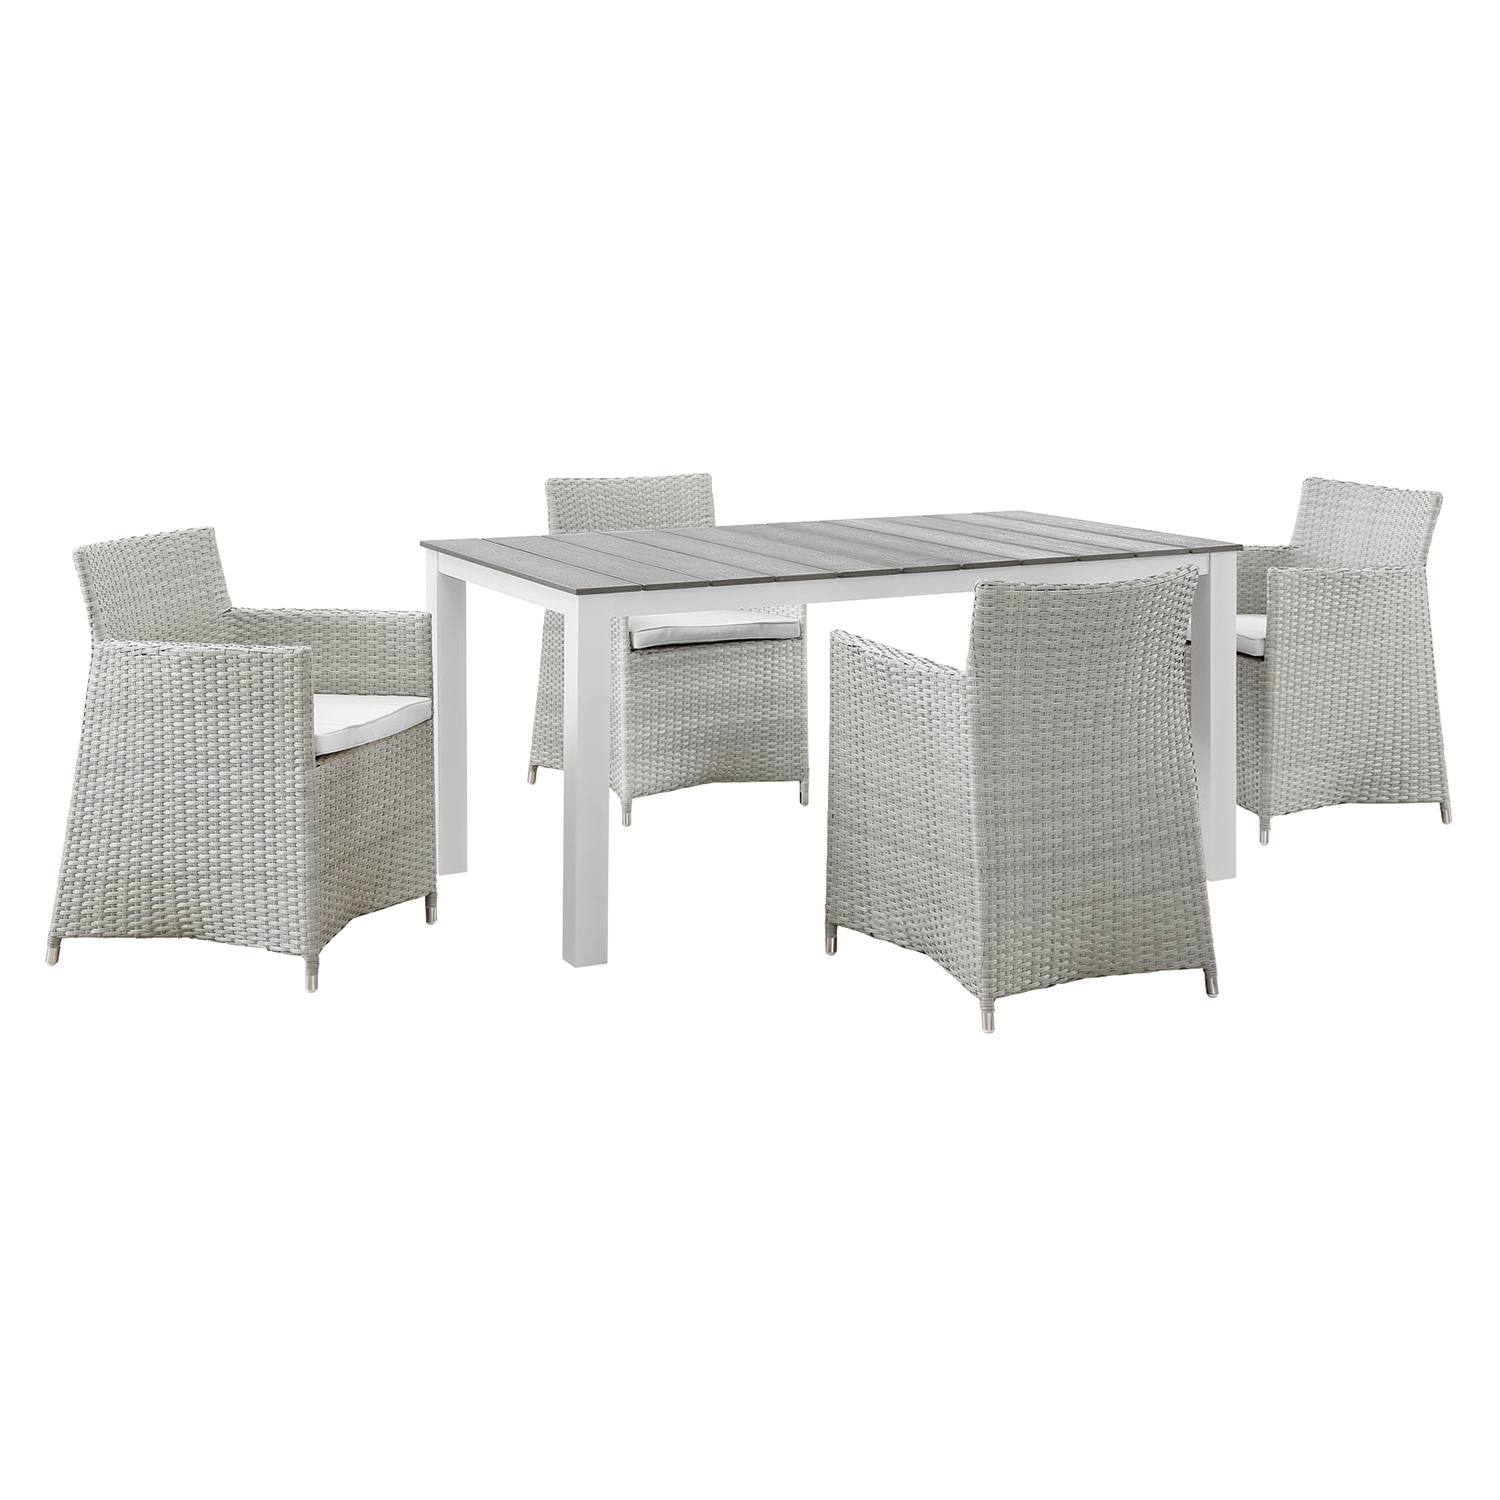 "Junction 5 Pieces 63"" Outdoor Patio Set - Gray Frame, White Cushion - EEI-1746-GRY-WHI-SET"